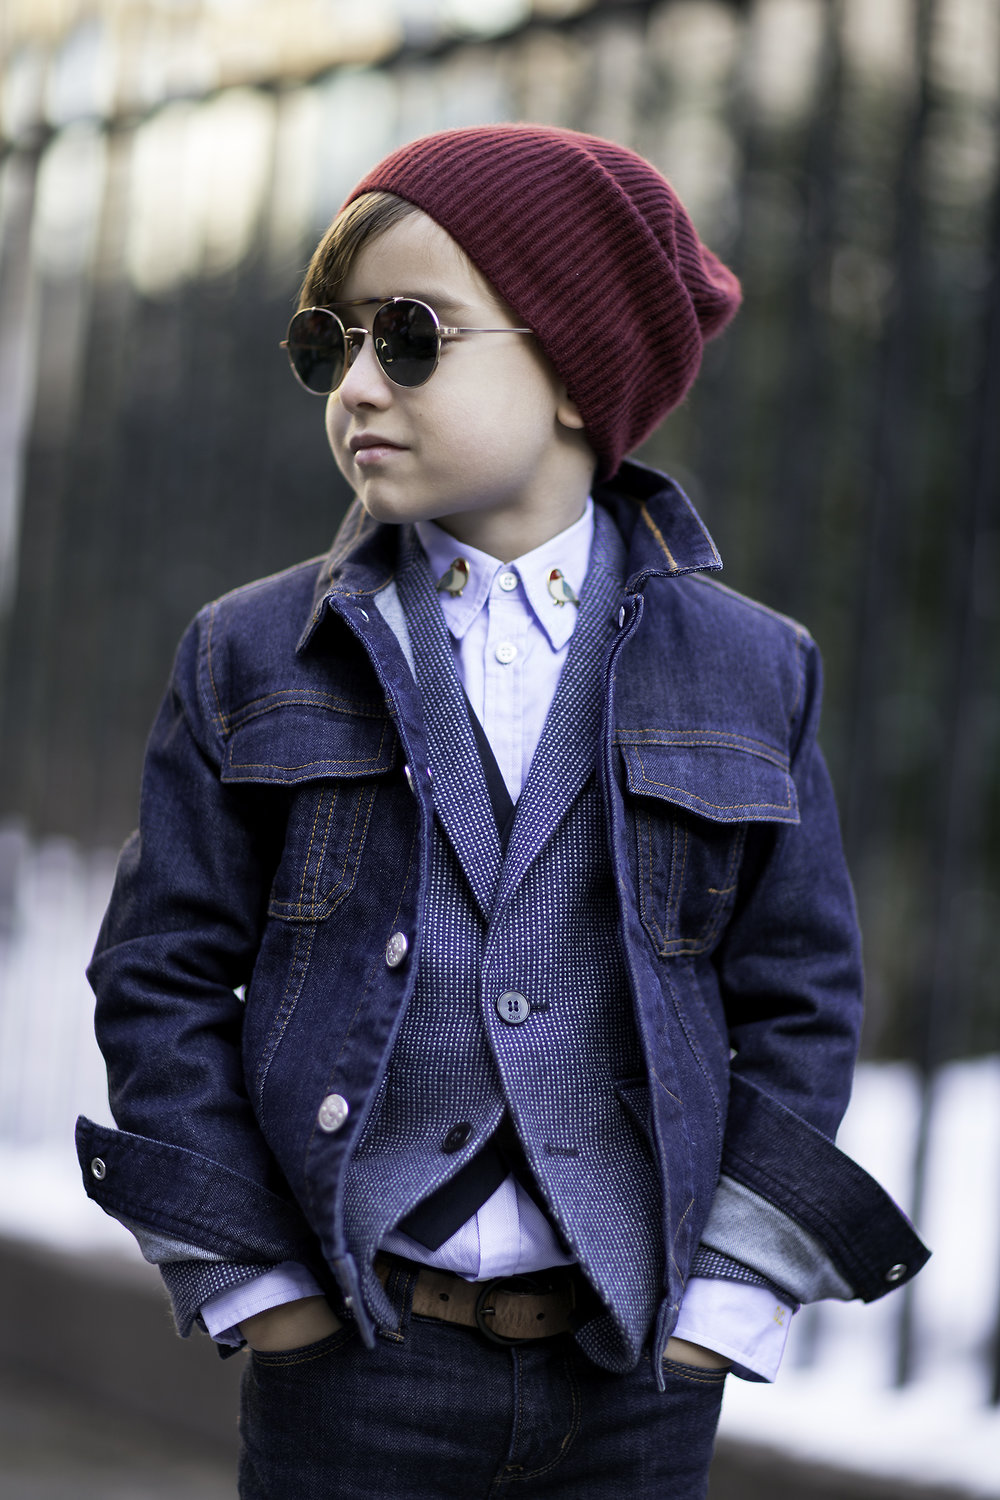 alonso_mateo_kids_fashion_felicidad_de_lucas_photographer_06.jpg